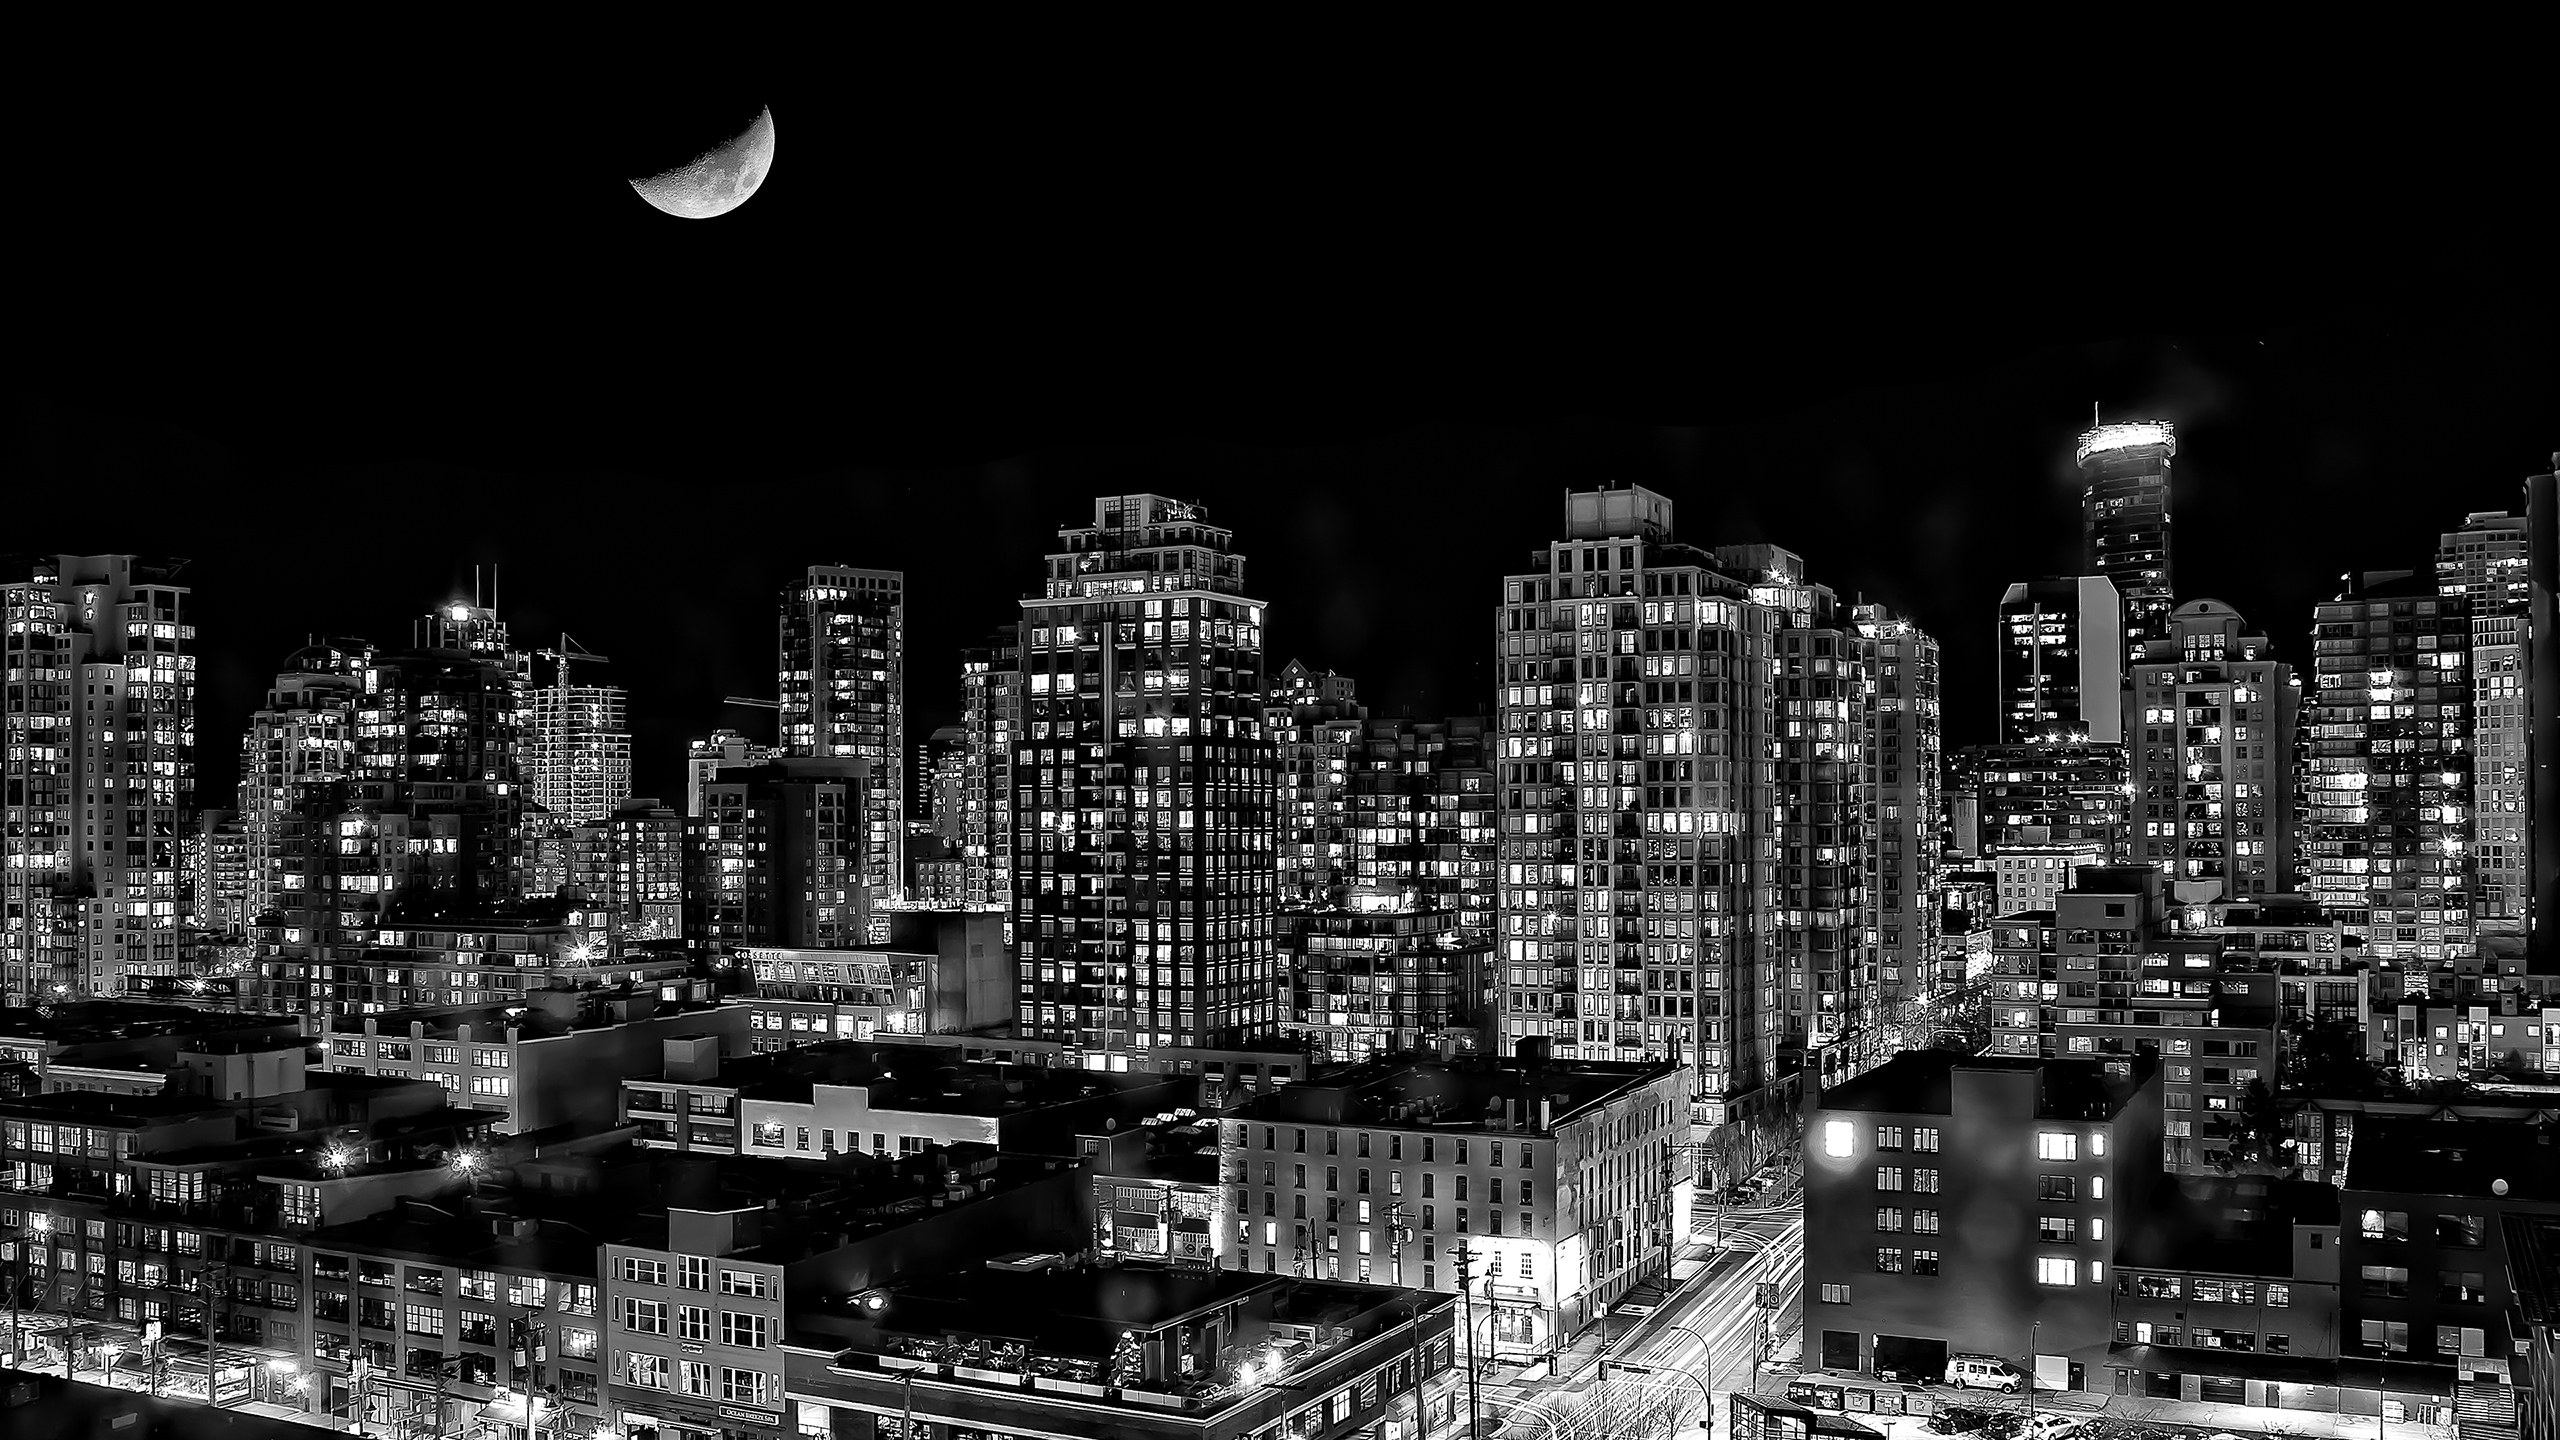 city_not_sleeping_2560x1440